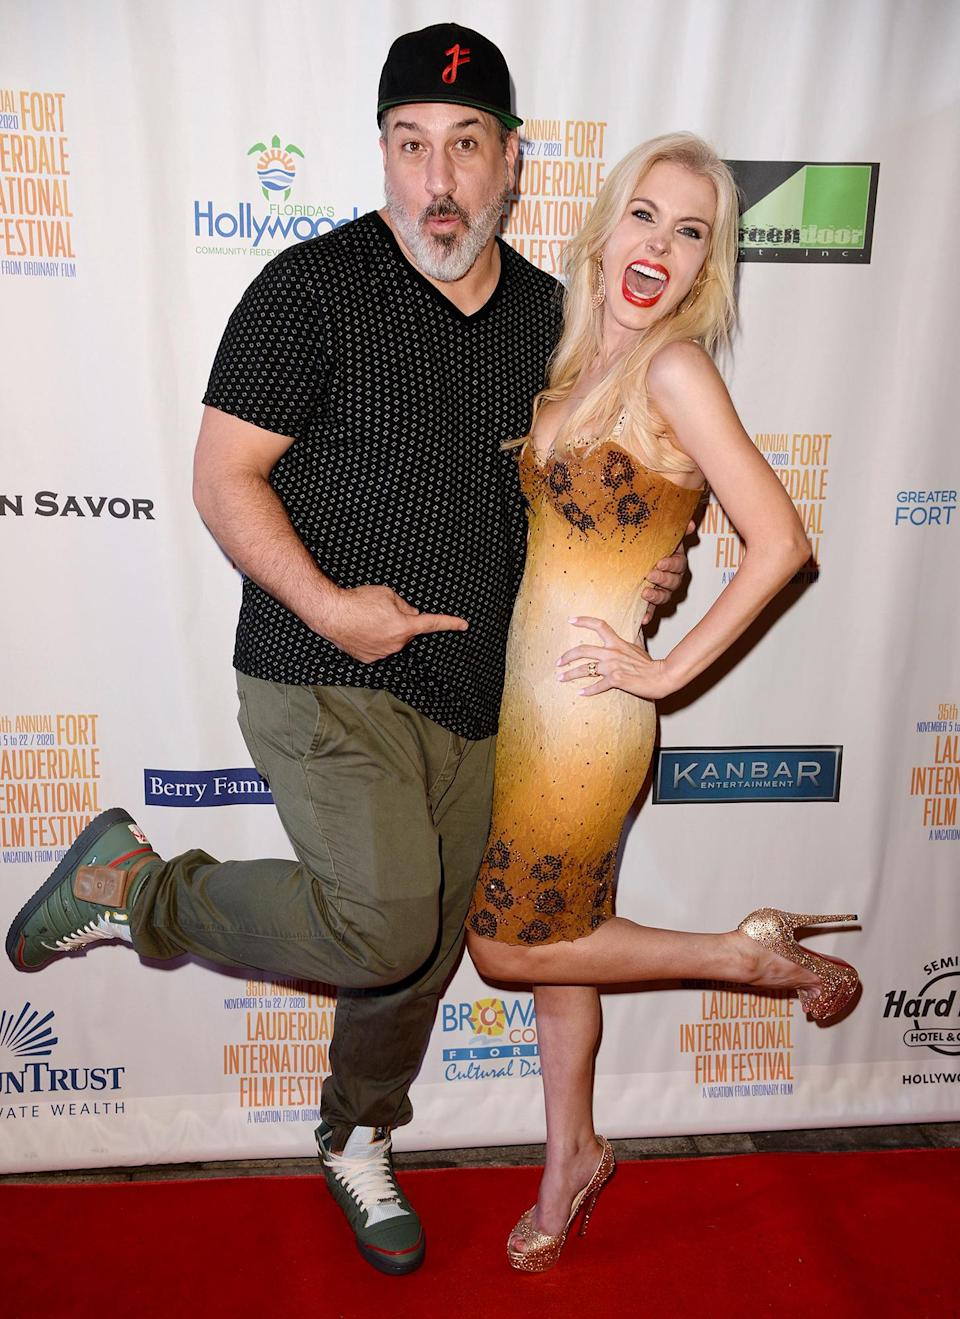 <p>Joey Fatone and Kate Katzman have fun on the red carpet for the screening of <em>The Comeback Trail</em> at the 35th Annual Fort Lauderdale International Film Festival on Thursday.</p>